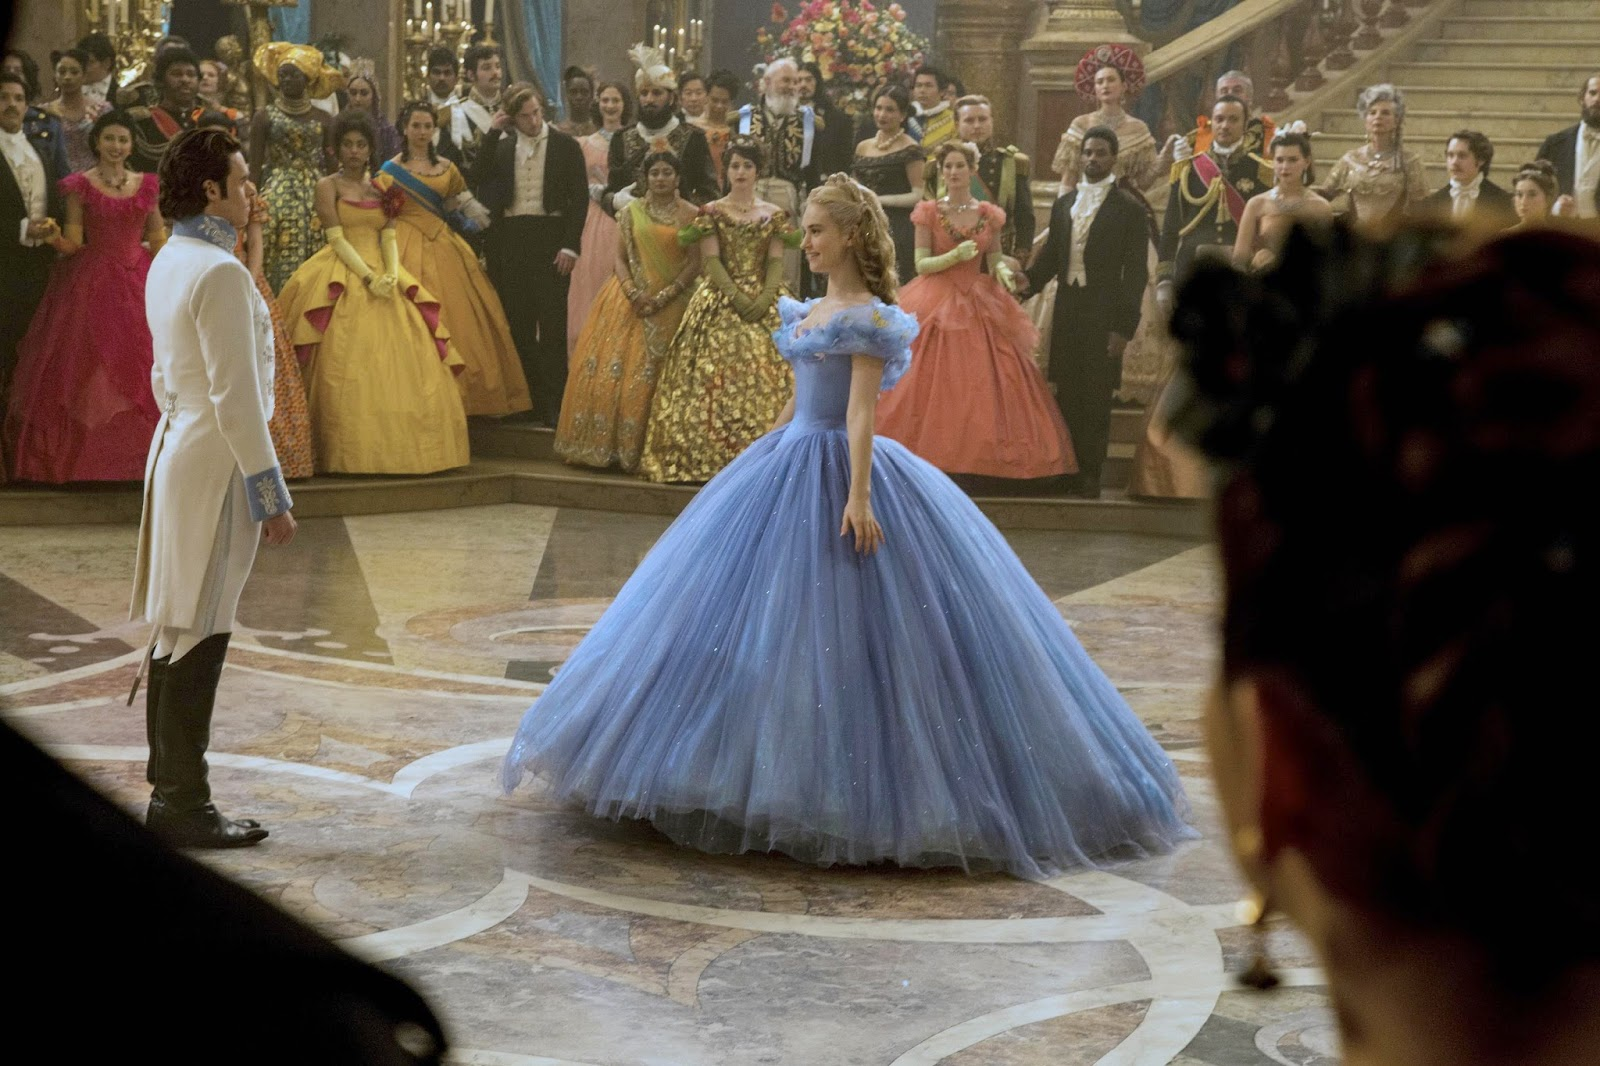 Cinderella 2015 Movie Pesta Dansa Ella & Kid